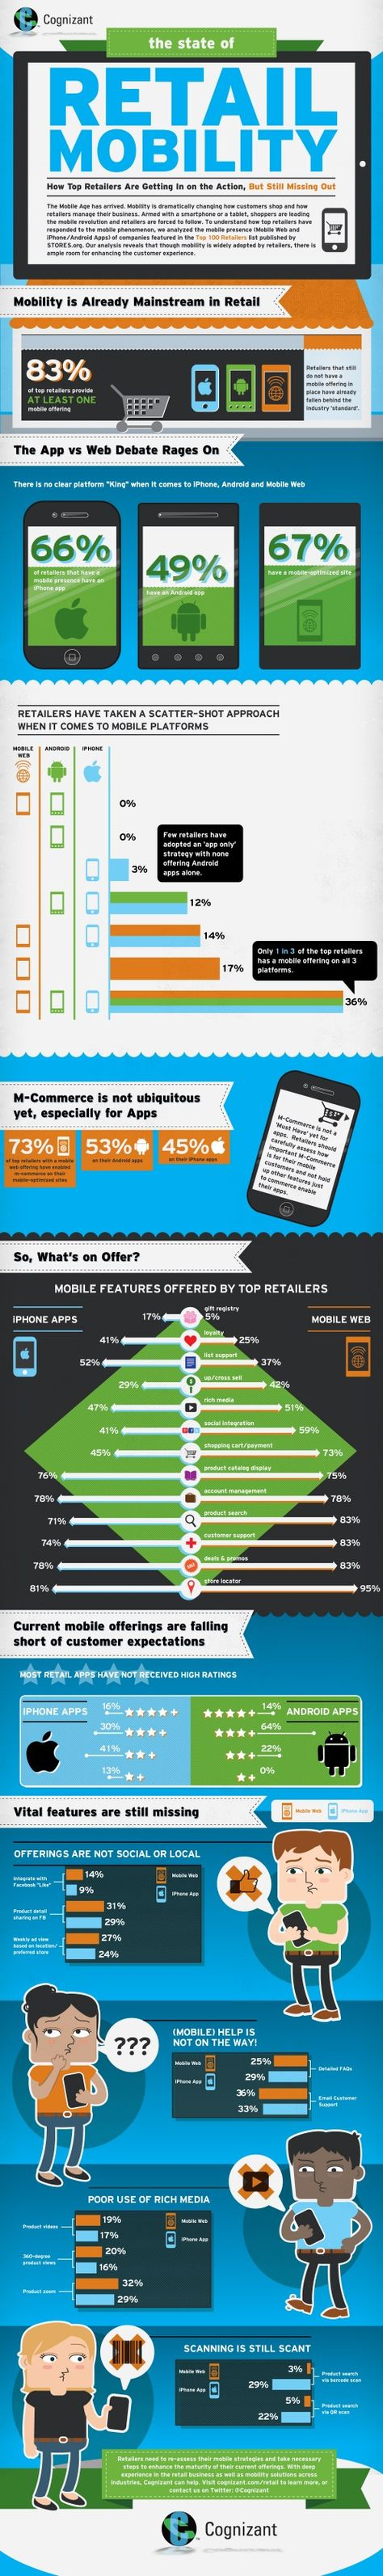 The State of Retail Mobility [Infographic]